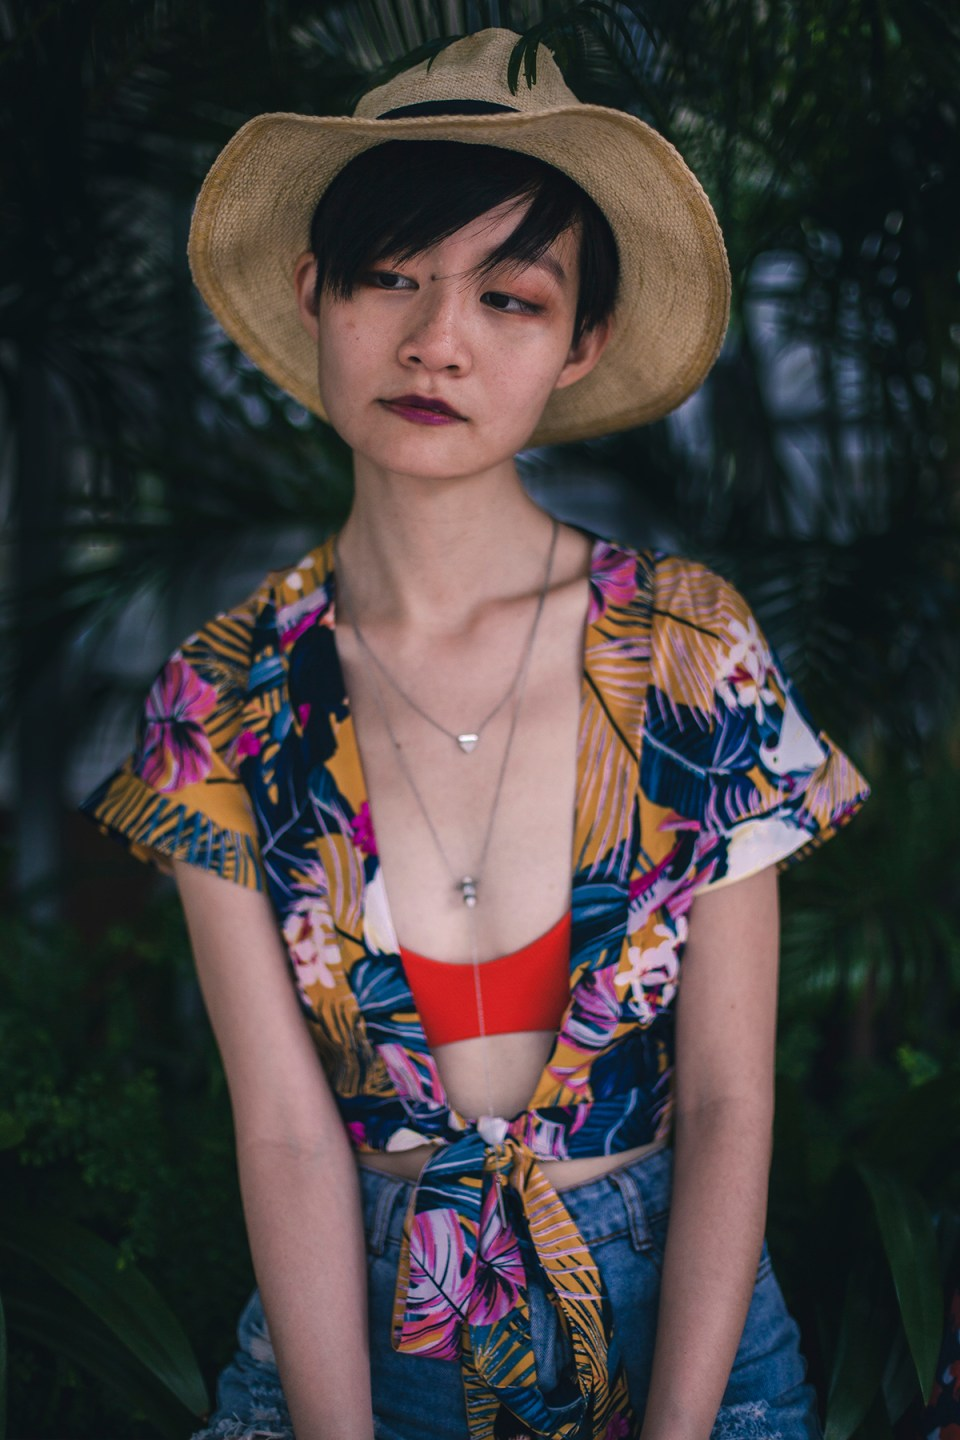 Zaful swim wrap kimono outfit, Billabong Love Myself Bralette Bikini Top, Aldo Cocia Necklace, CNDirect distressed denim shorts, Uniqlo UV straw hat.